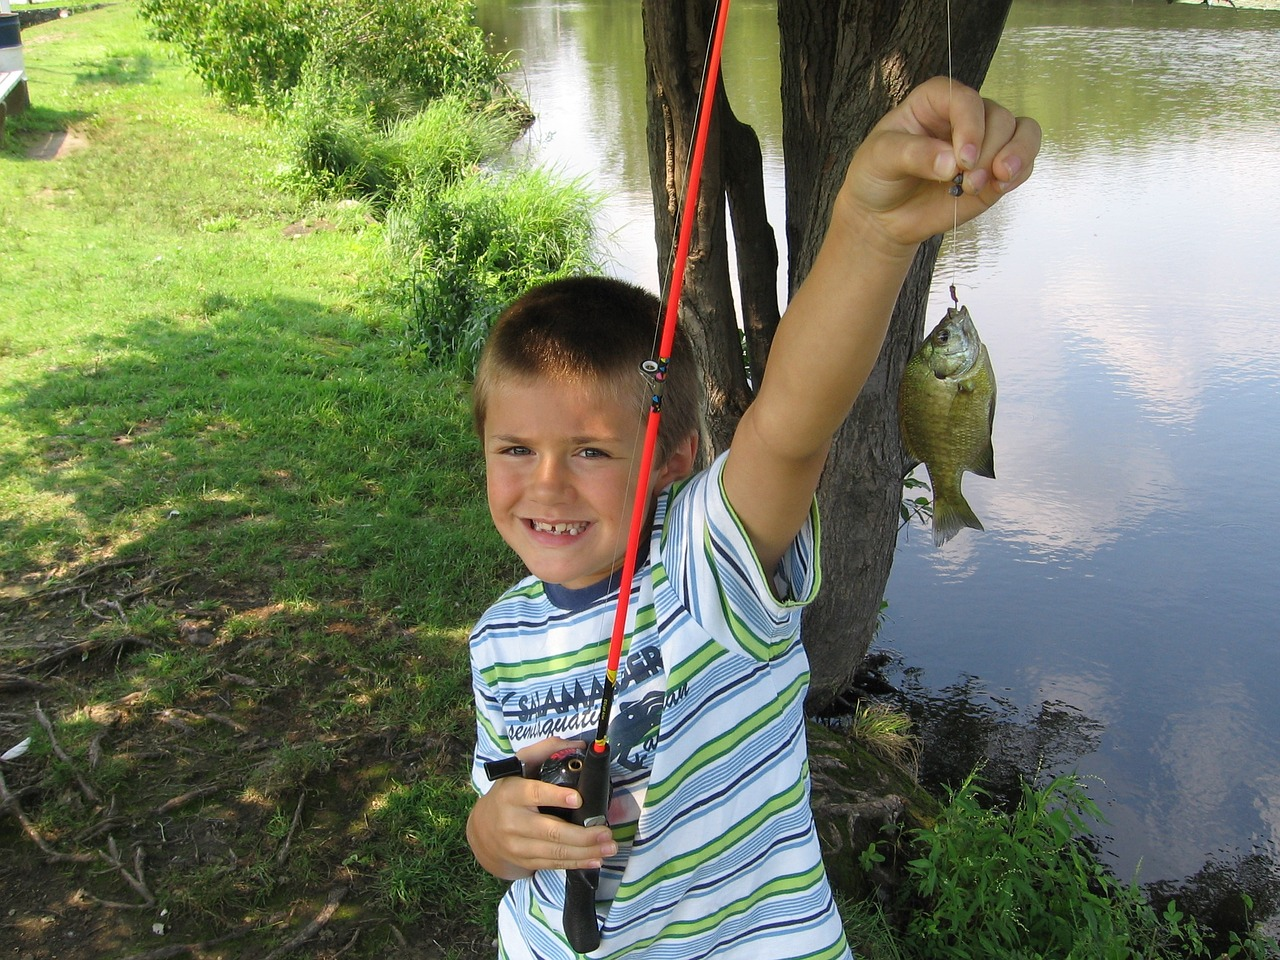 beginner kids fishing gear for pole poles rod and reel combo tackle